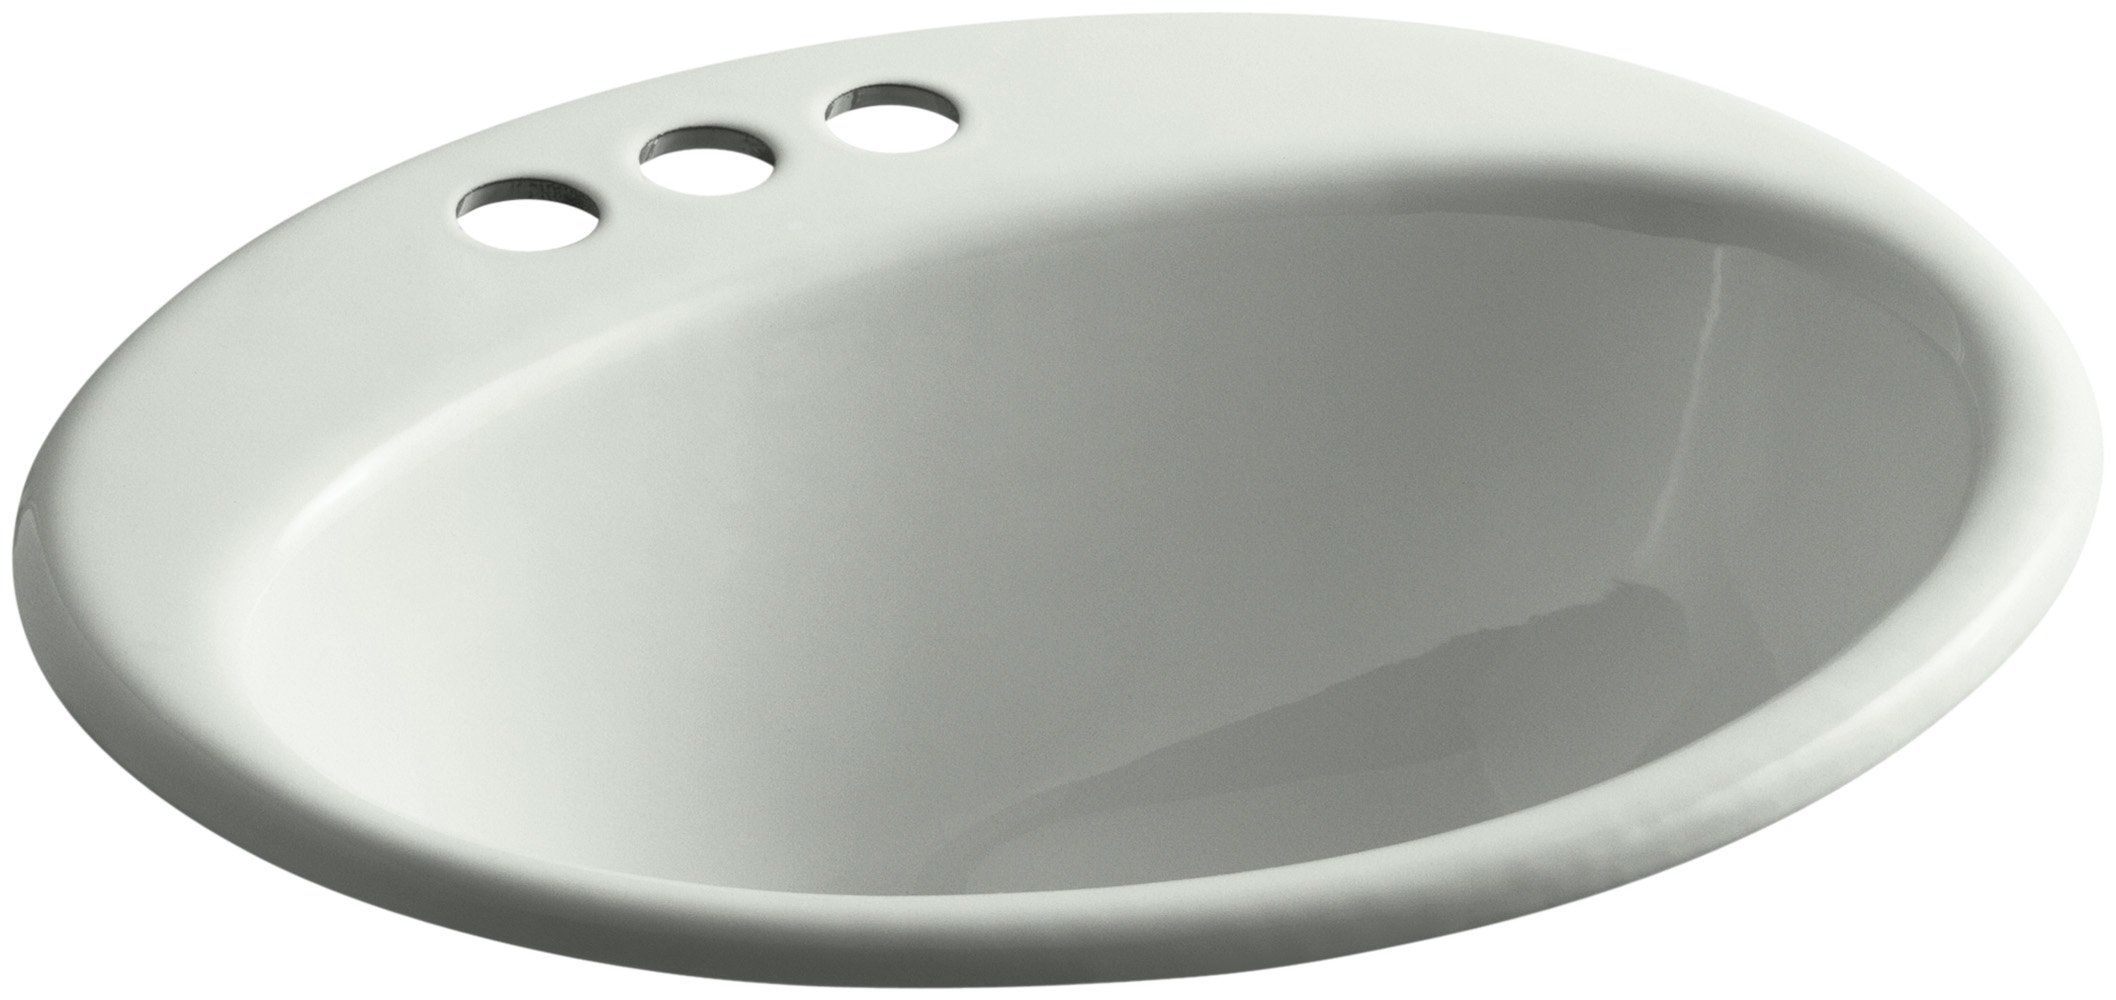 KOHLER K-2905-4-FF Farmington Drop-In Bathroom Sink with 4-Inch Centerset Faucet Holes, Sea Salt